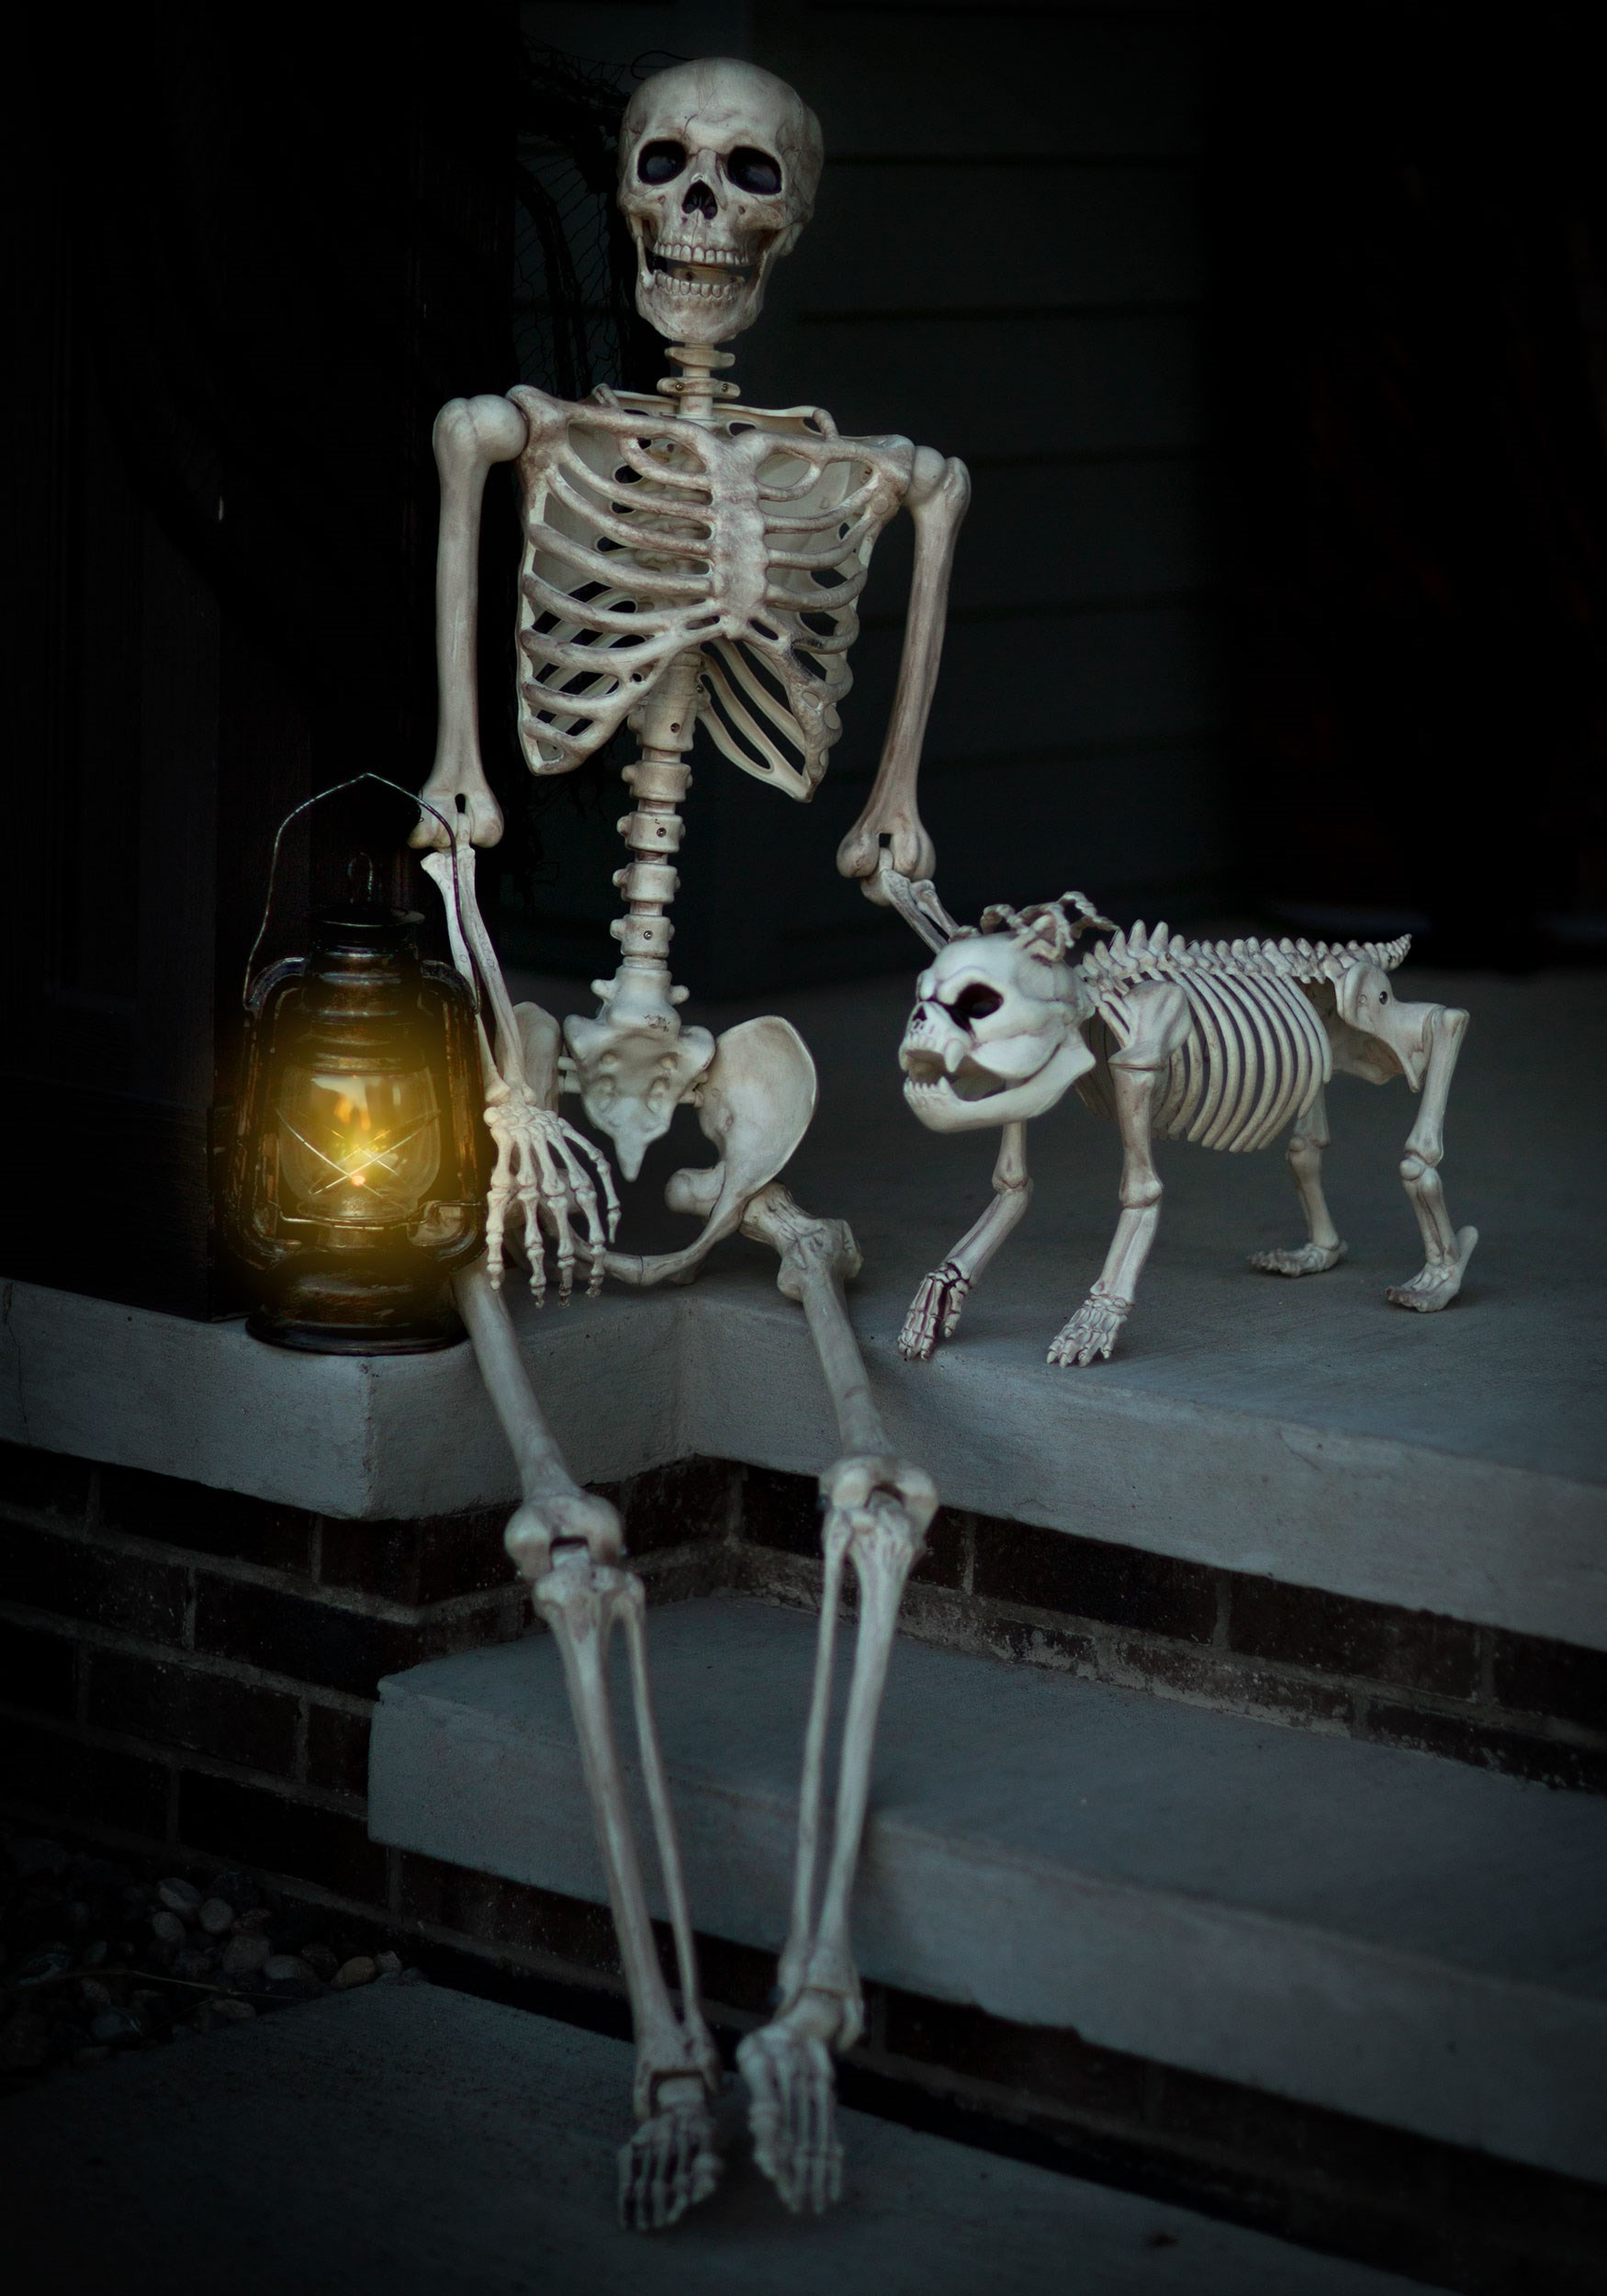 Life-Size Poseable Human Skeleton - Skeleton Halloween Decorations